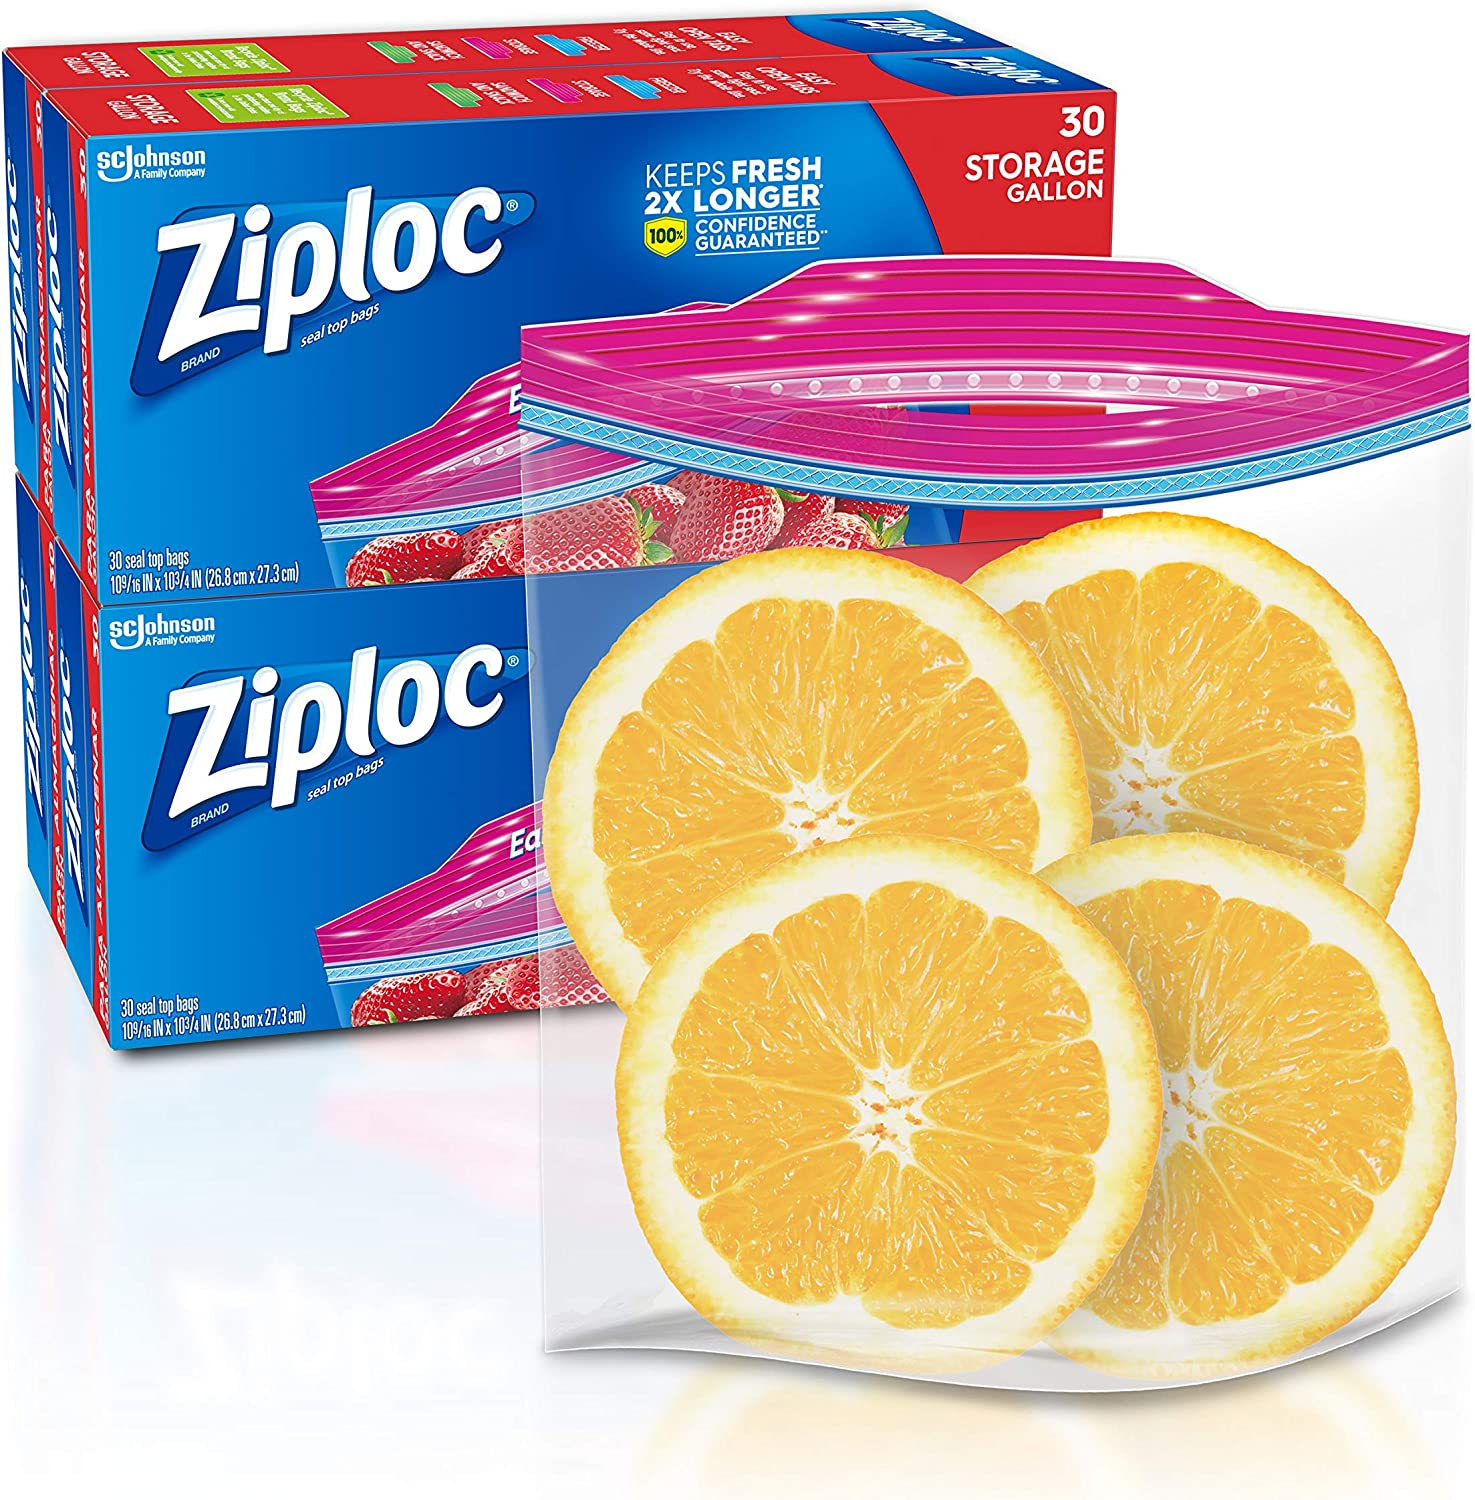 Ziploc Slider Storage Bags with New Grip 'n Seal Technology, For Food, Sandwich, Organization and More, Gallon, 30 Count, Pack of 4 (120 Total Bags)